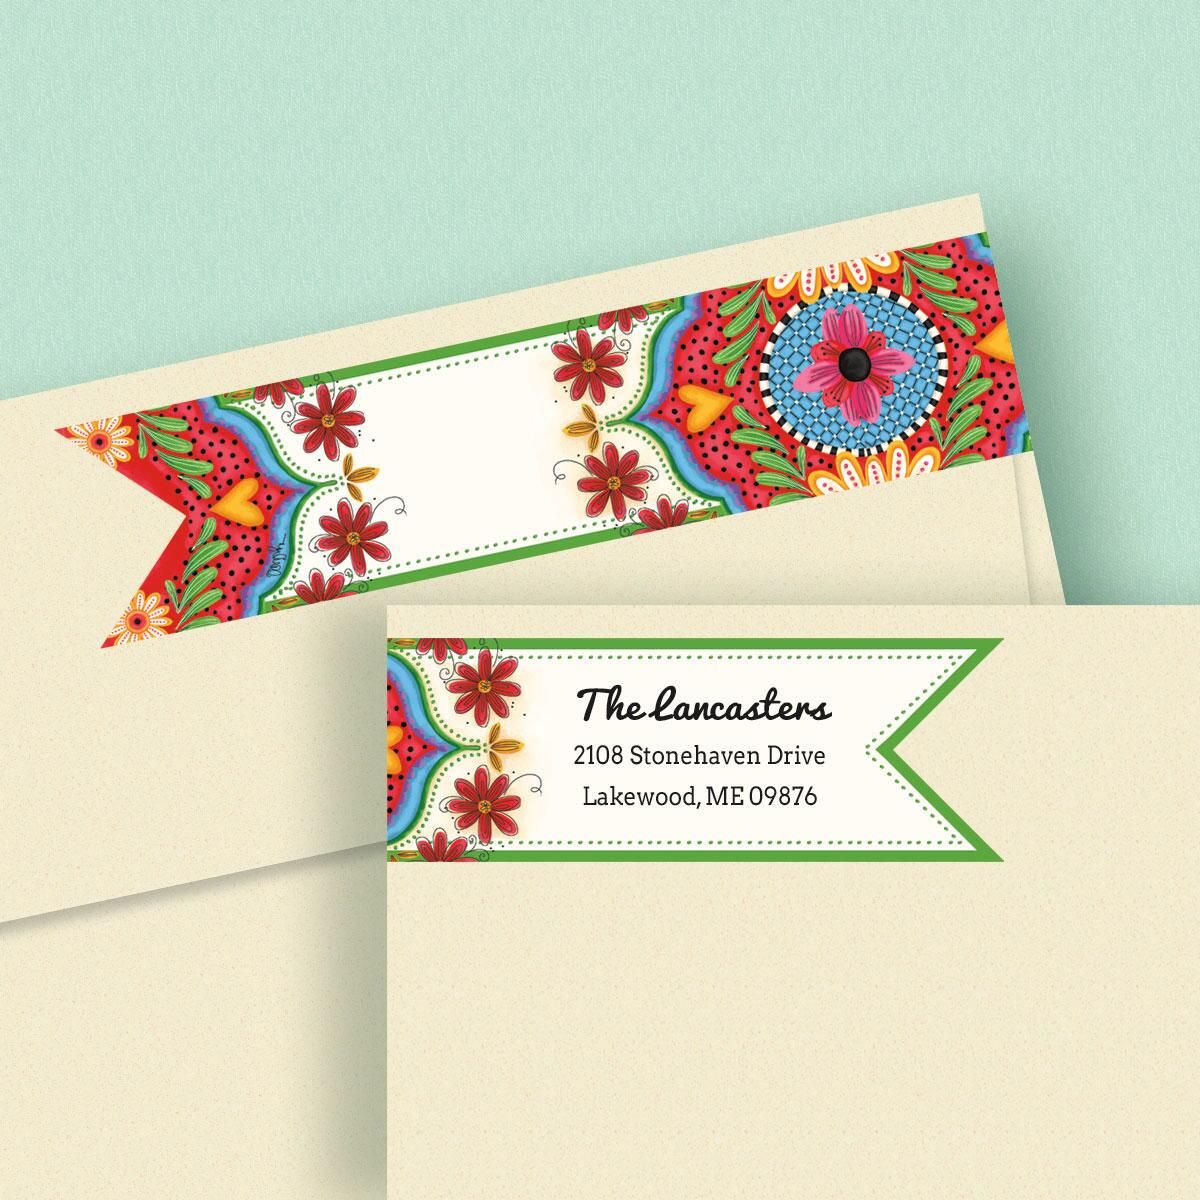 Spanish Flair Wrap Around Address Labels